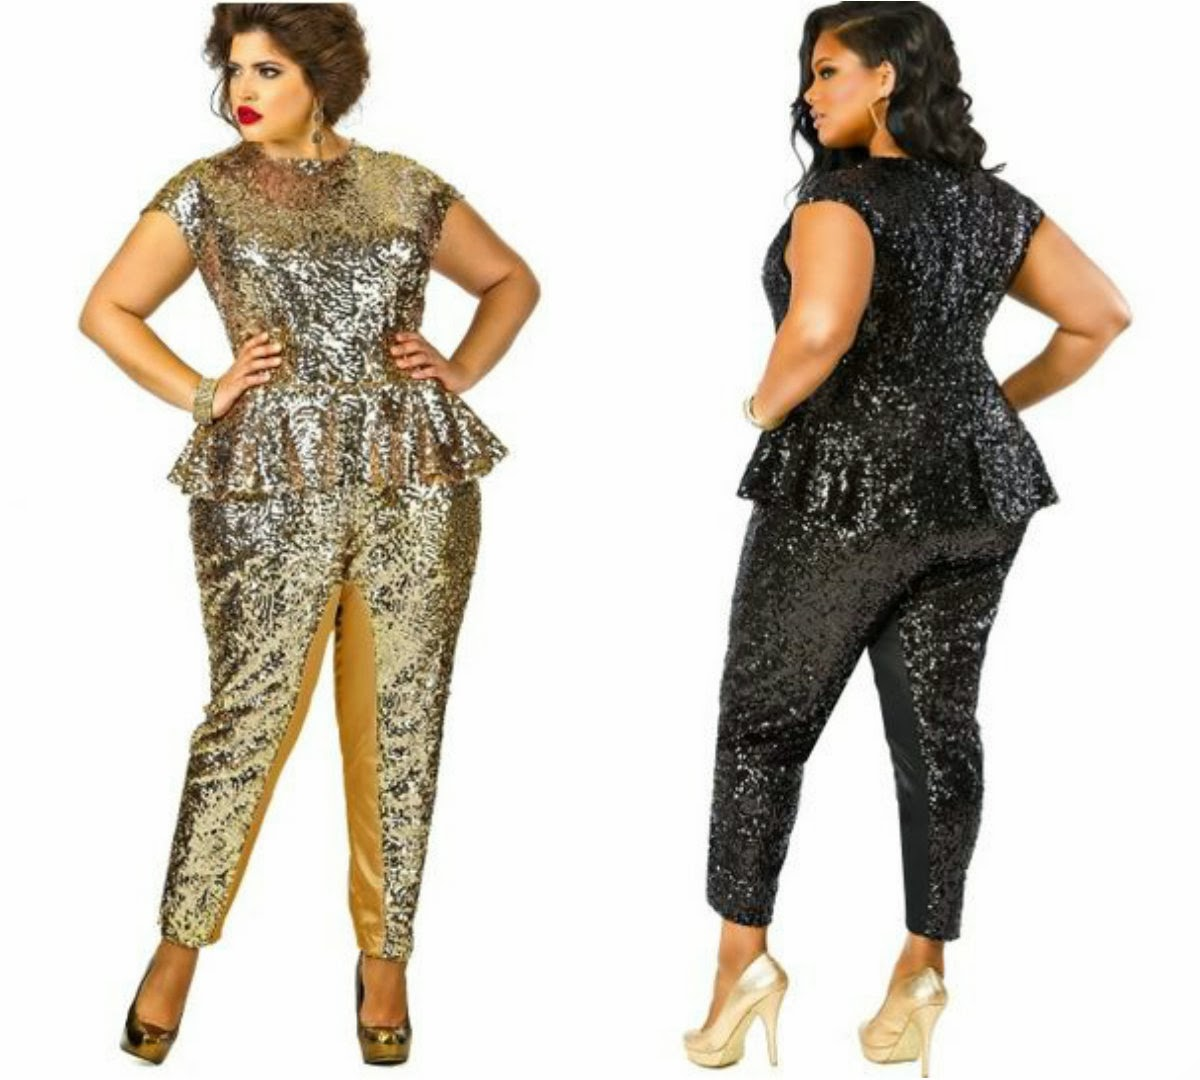 ok&co plus size attire